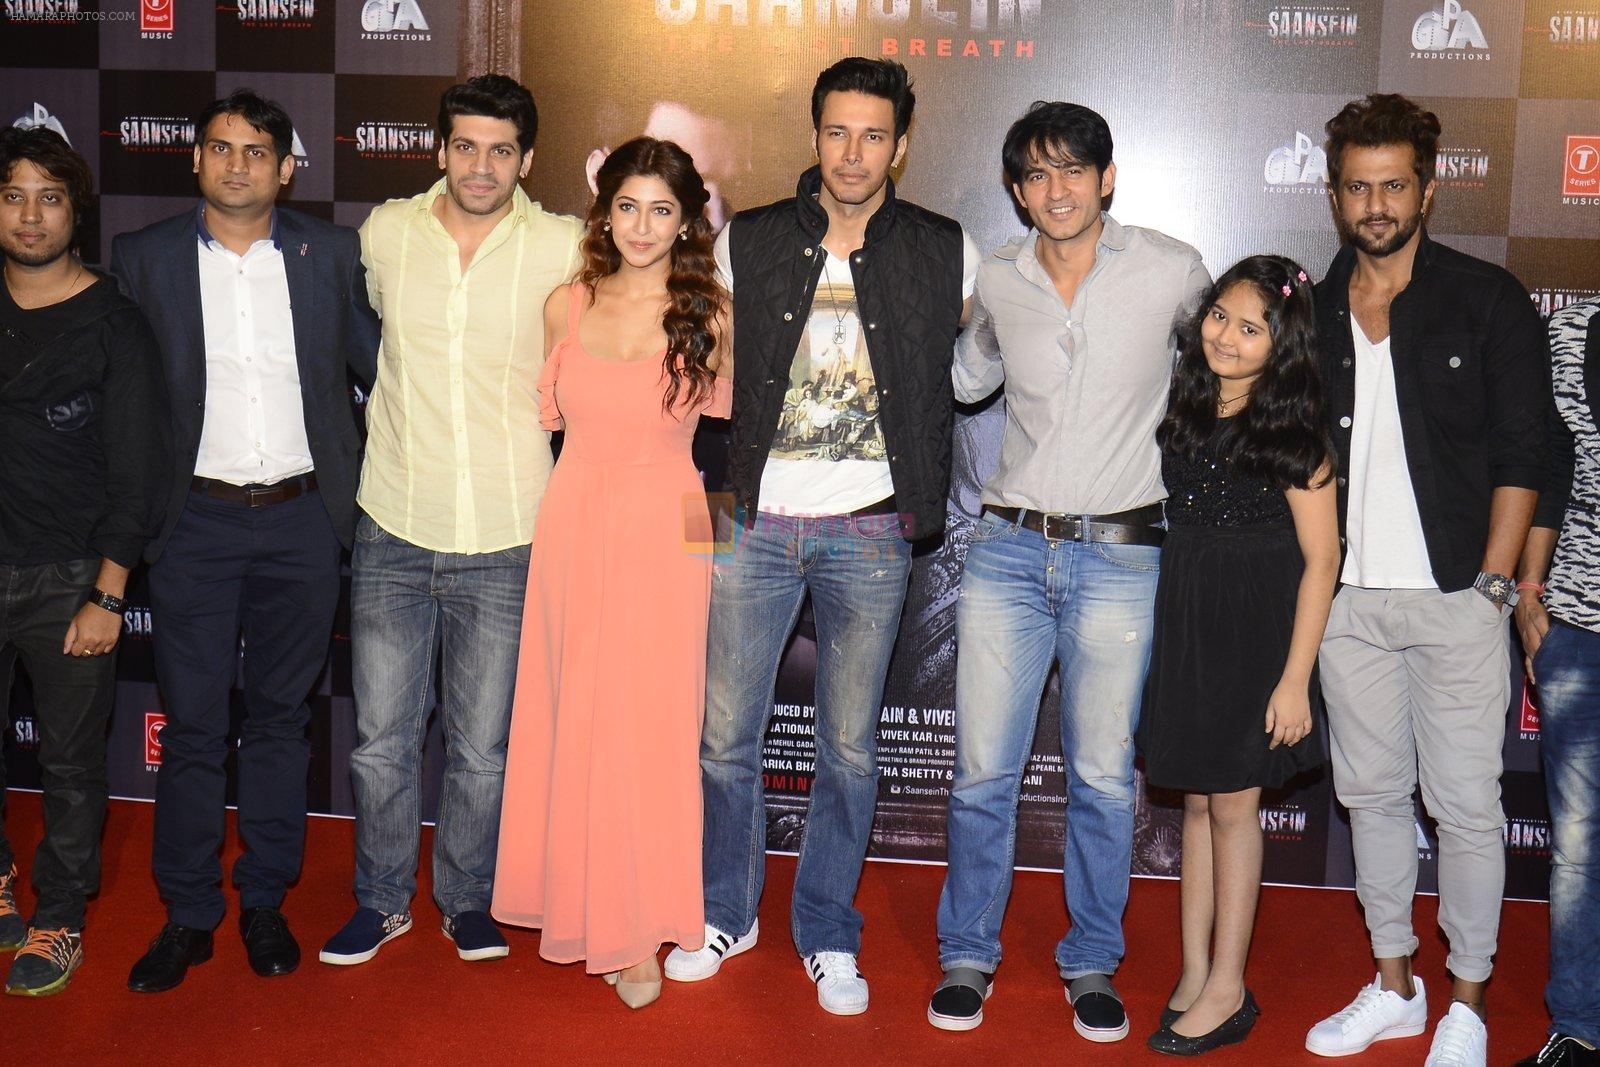 Sonarika Bhadoria, Rajneesh Duggal, Hiten Tejwani at Trailer launch of Saansein on 5th Oct 2016